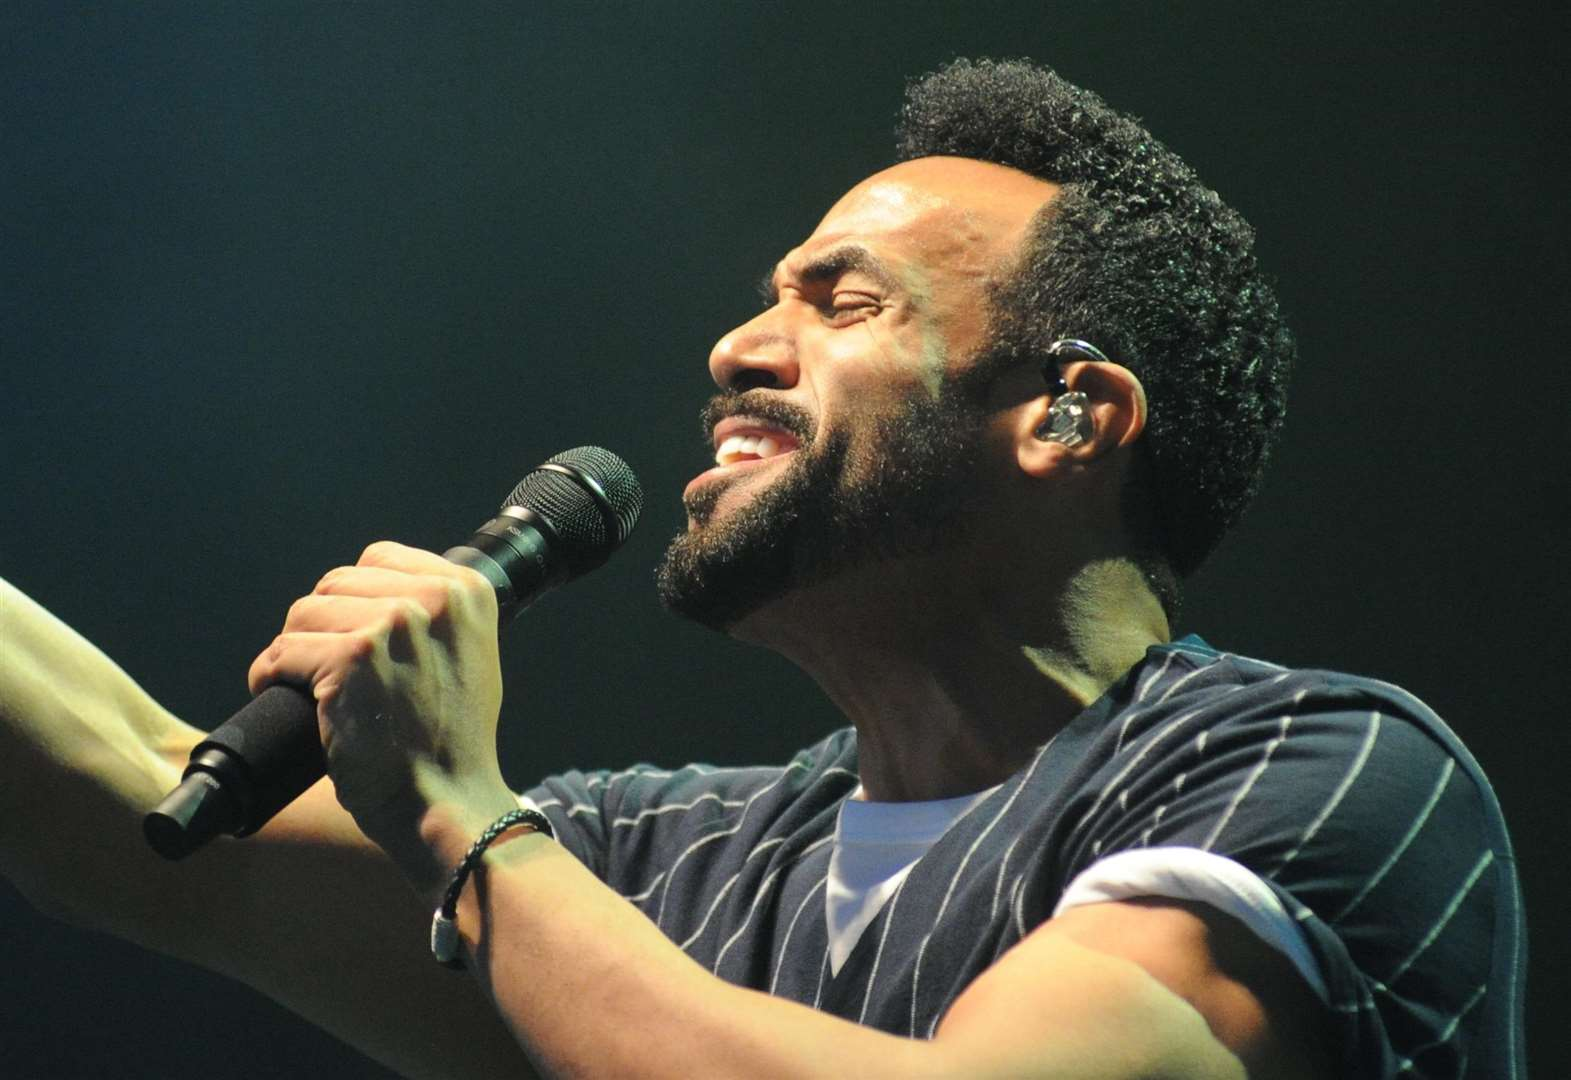 Craig David is set to fill us in this week